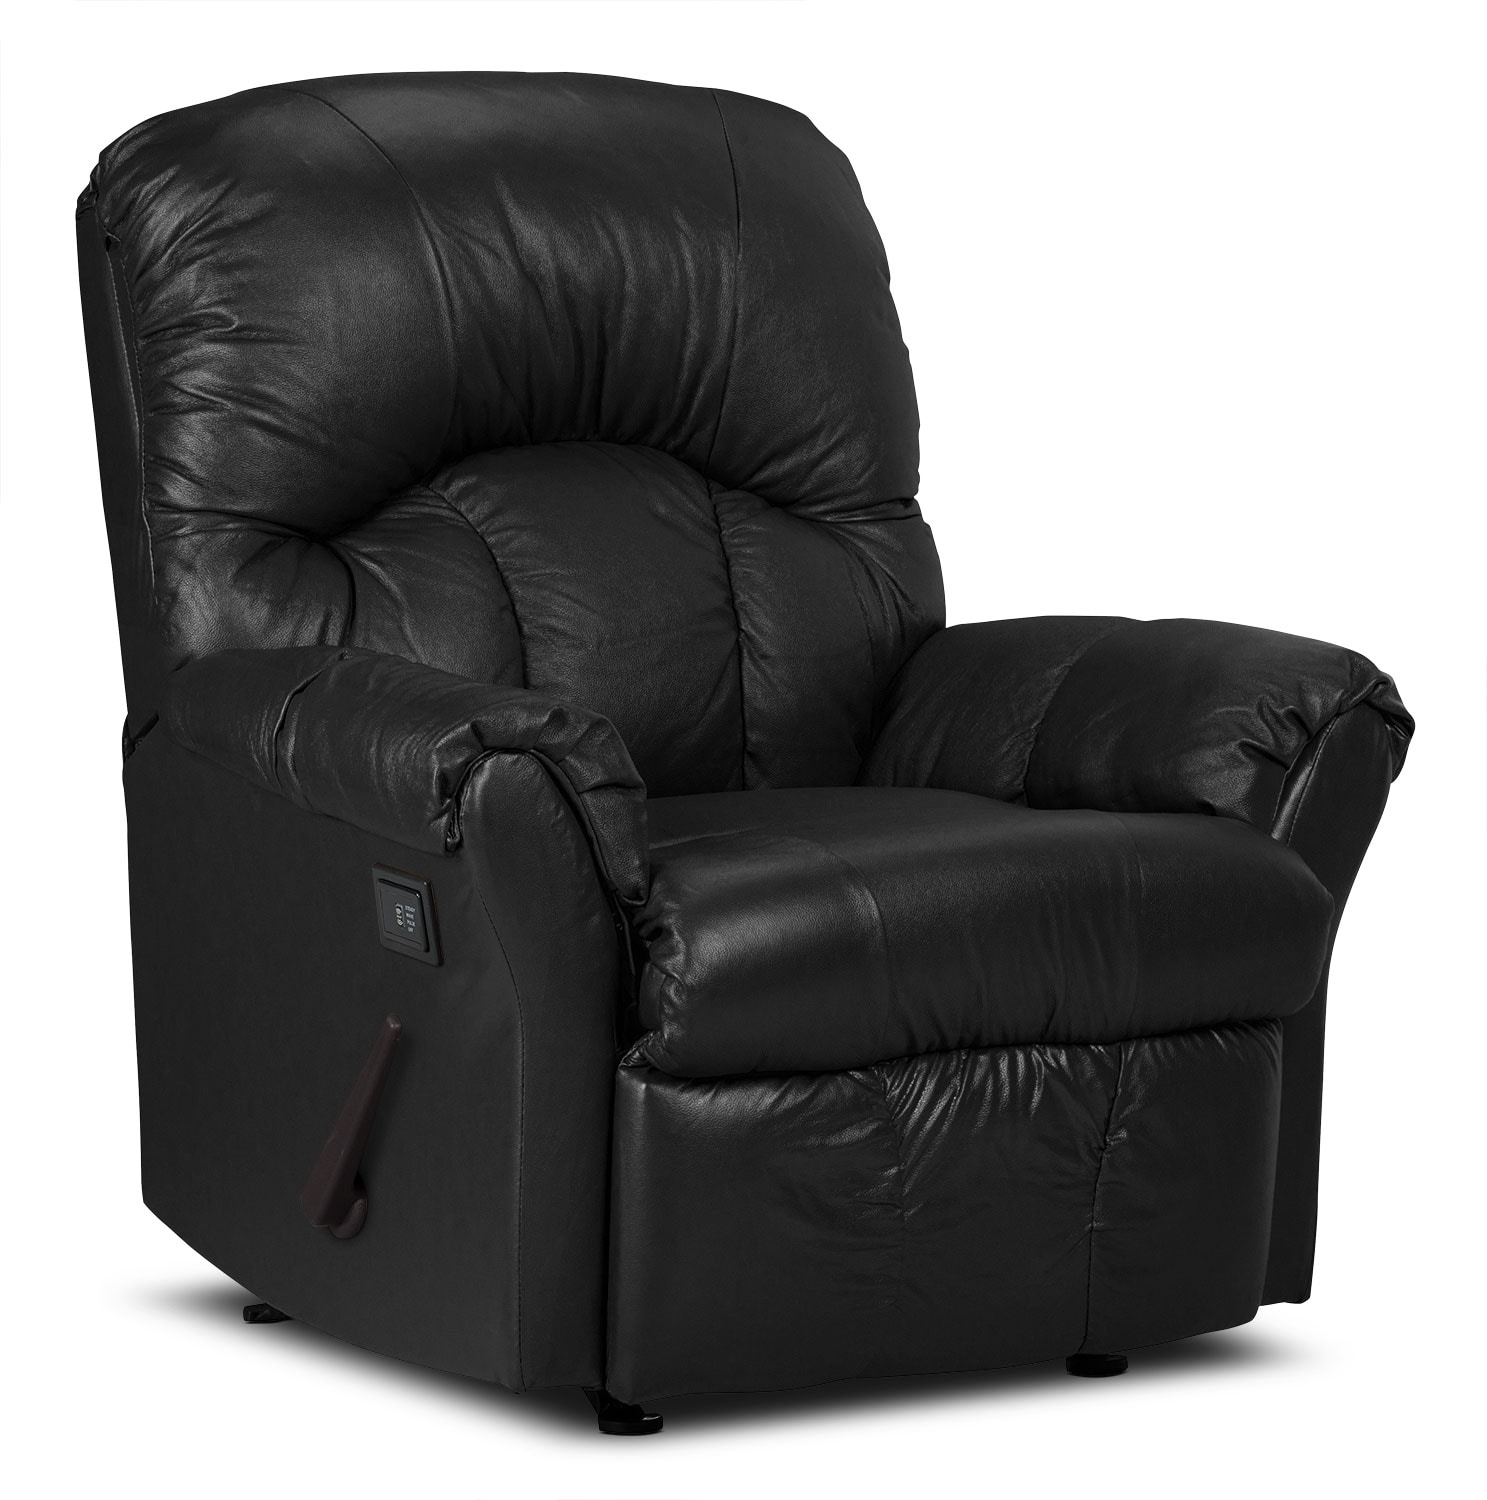 Designed2B Recliner 6734 Genuine Leather Massage Chair - Black